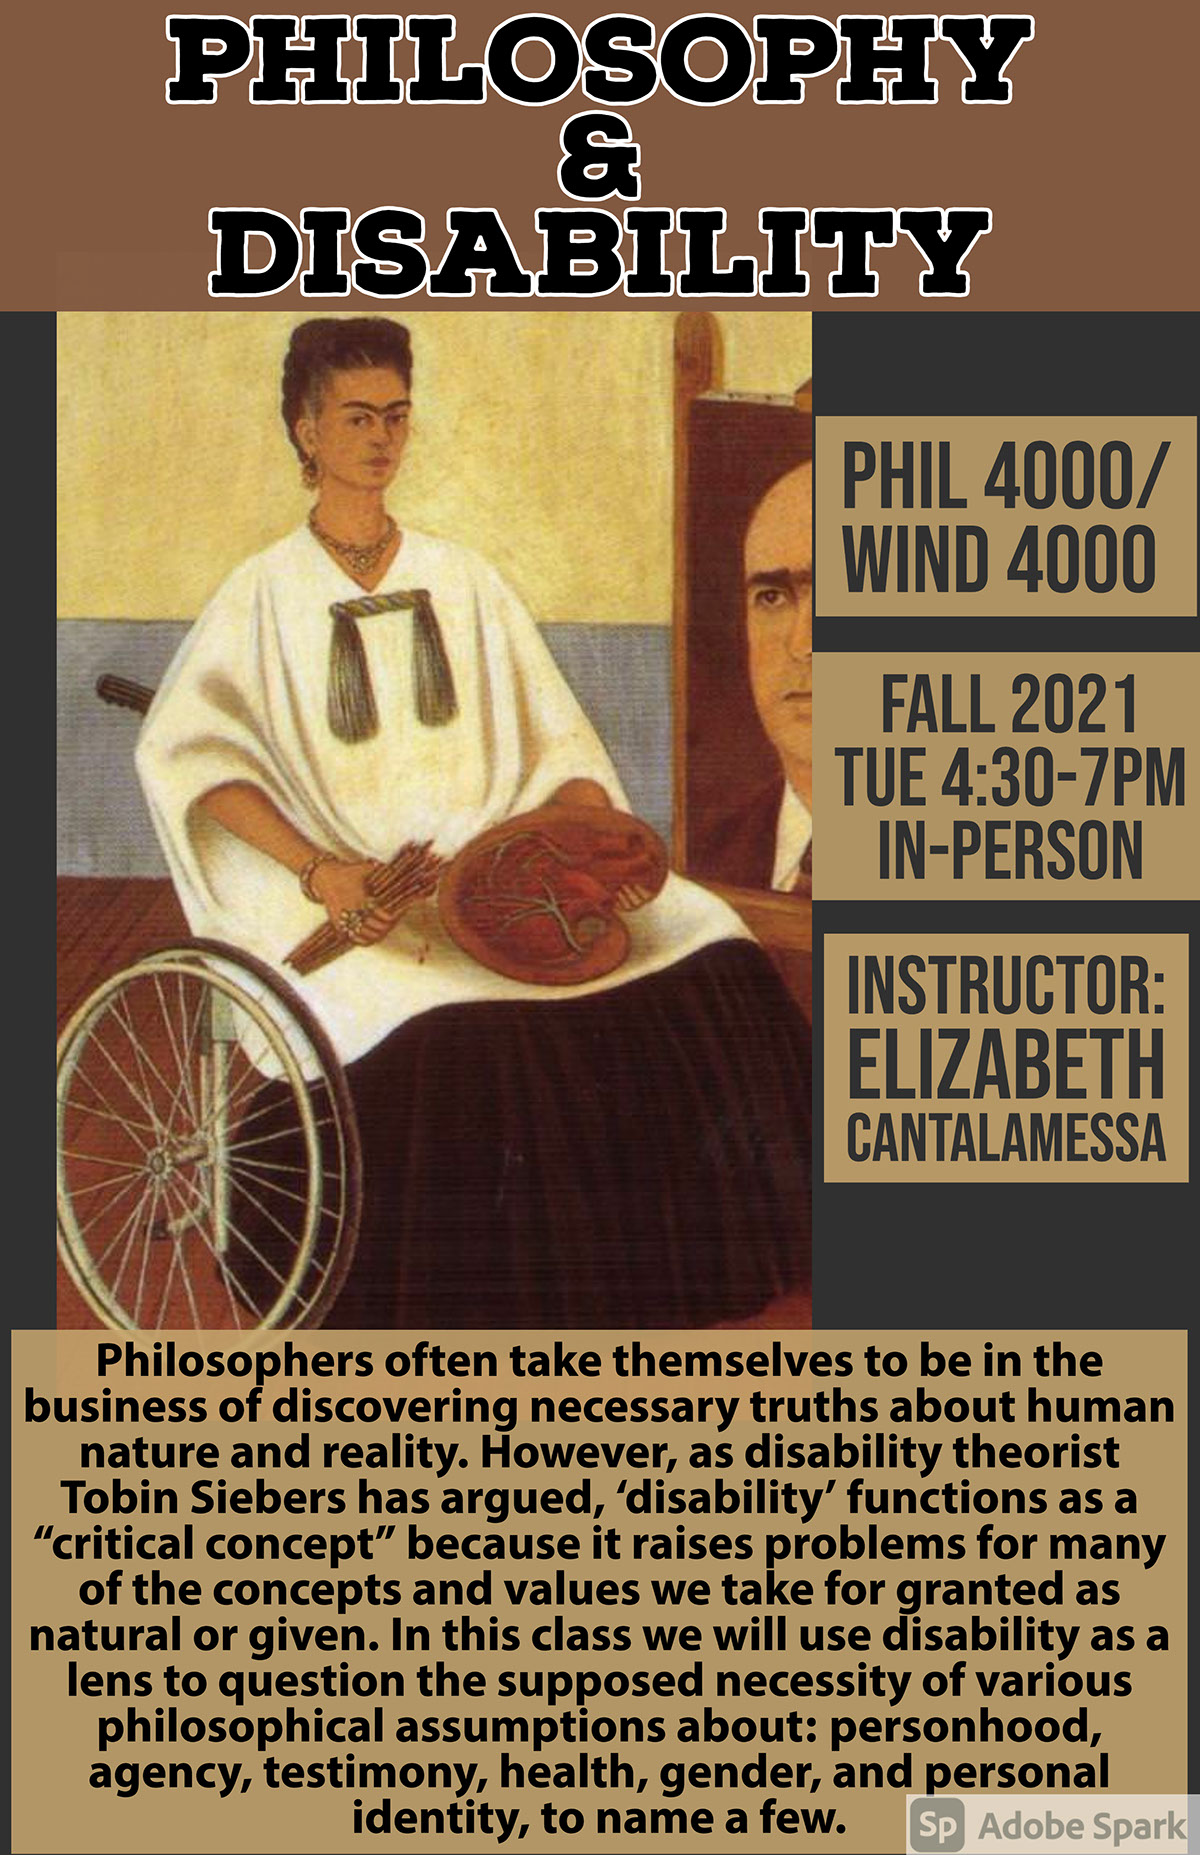 "Philosophy & Disability Philosophy & Disability PHIL 4000/ WIND 4000 Instructor: Elizabeth Cantalamessa Fall 2021 Tue 4:30-7pm in-Person Philosophers often take themselves to be in the business of discovering necessary truths about human nature and reality. However, as disability theorist Tobin Siebers has argued, 'disability' functions as a ""critical concept"" because it raises problems for many of the concepts and values we take for granted as natural or given. In this class we will use disability as a lens to question the supposed necessity of various philosophical assumptions about: personhood, agency, testimony, health, gender, and personal identity, to name a few."